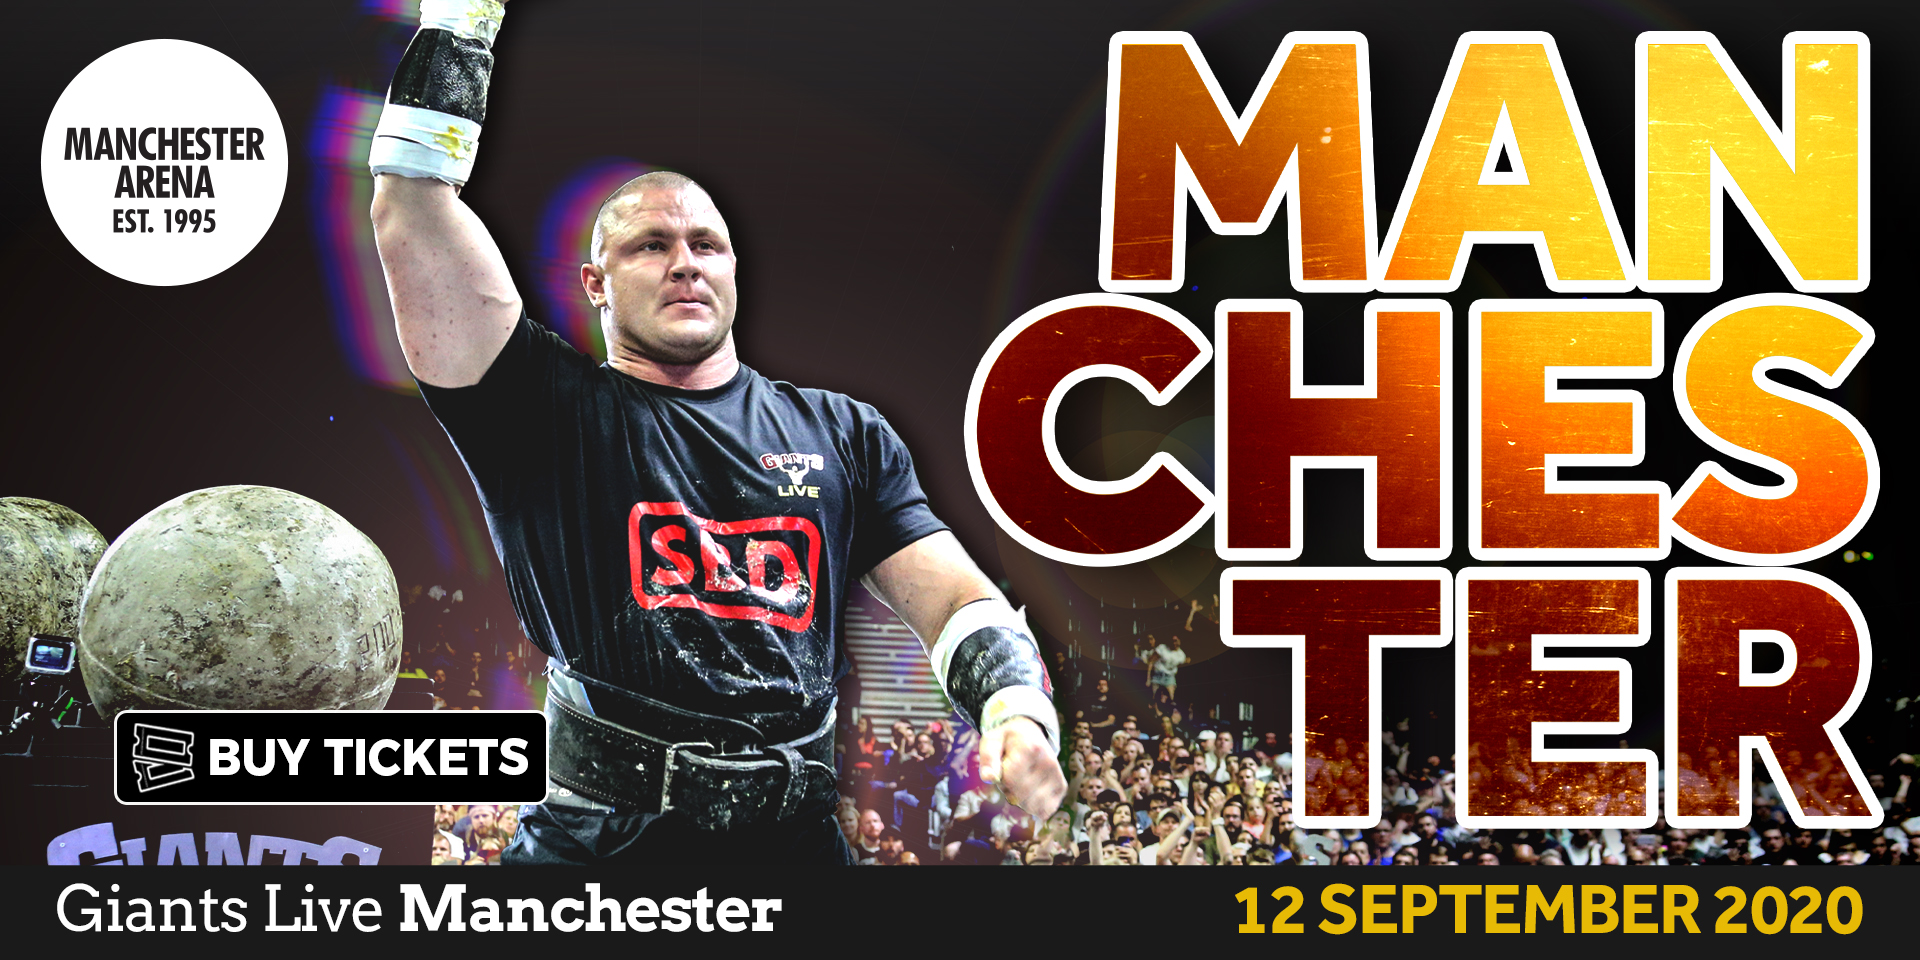 The Giants return to Manchester in 2020 for another JAW-DROPPING display of strength!